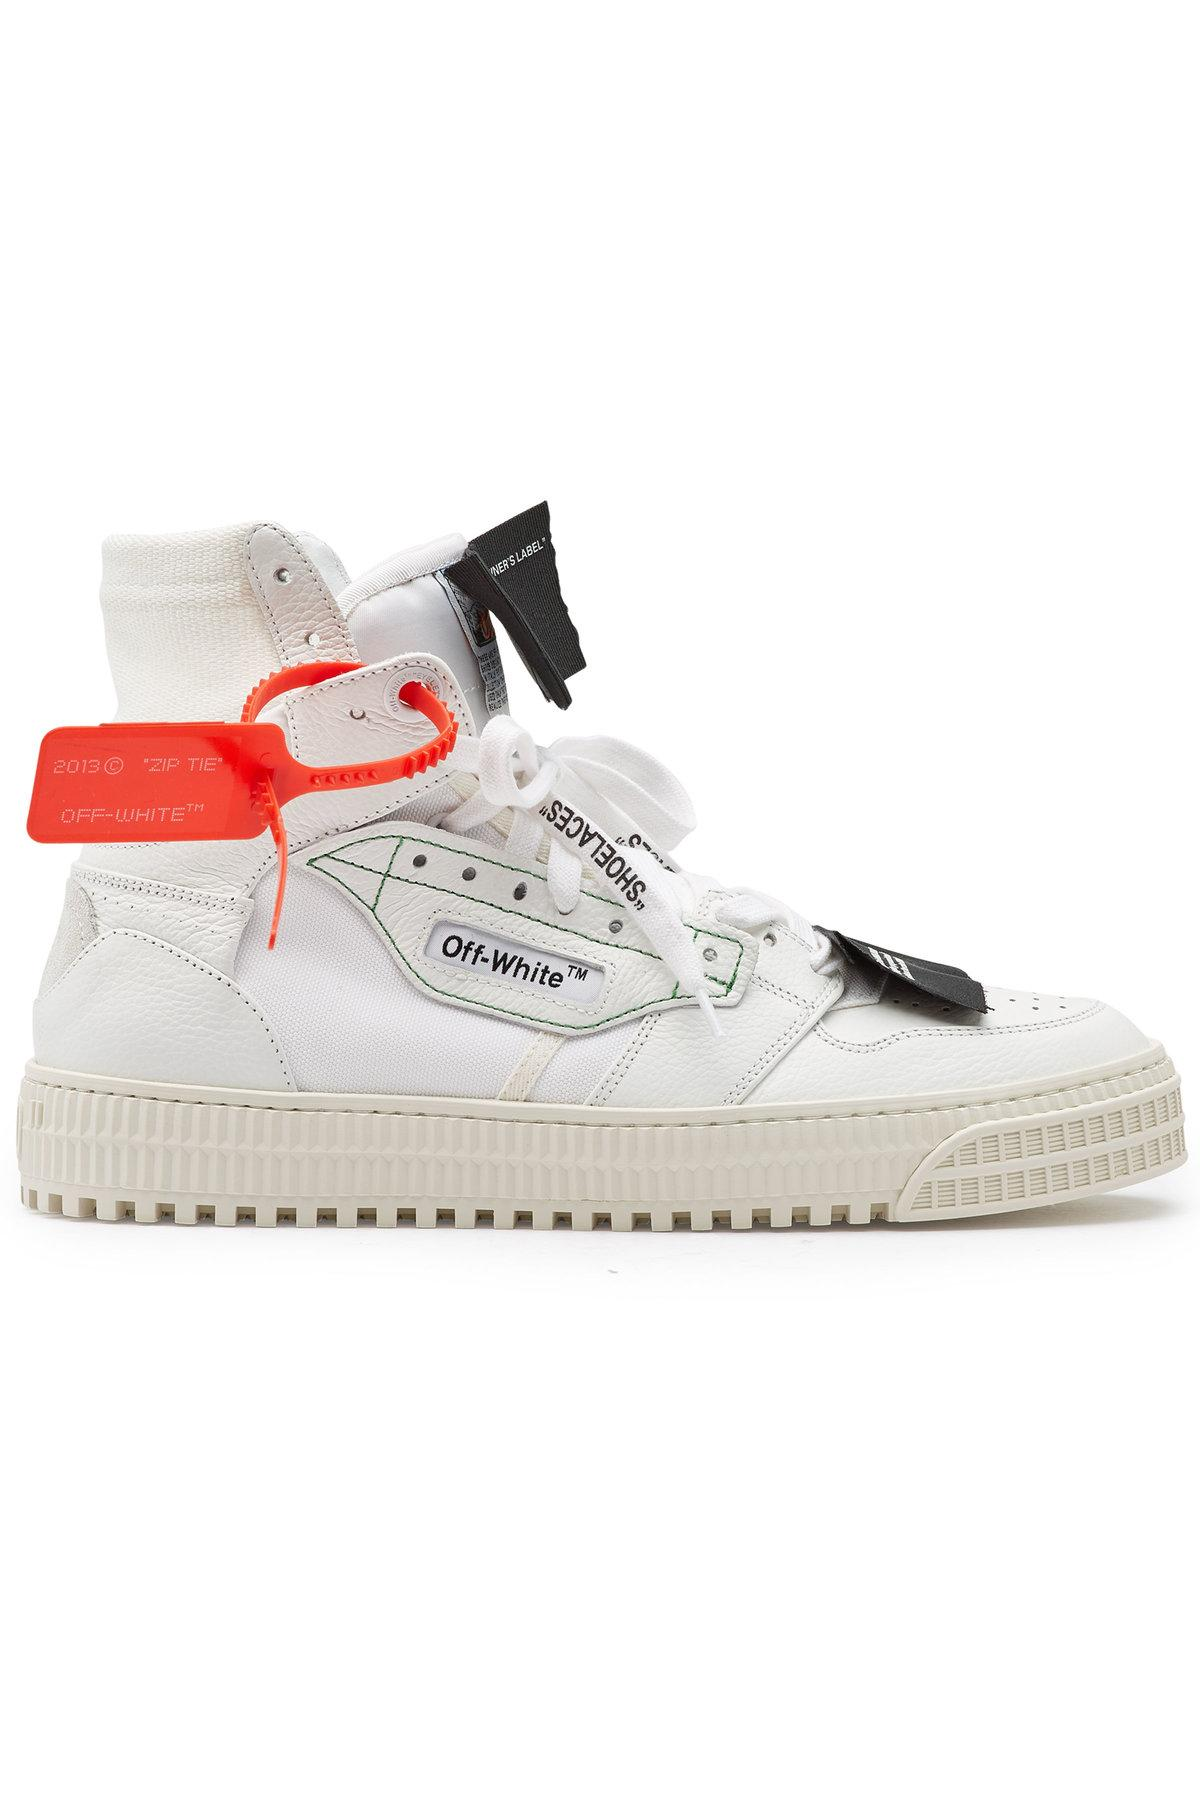 cba00cc19b82 ... Virgil Abloh - Multicolor Leather And Fabric Off Court Sneakers. View  fullscreen